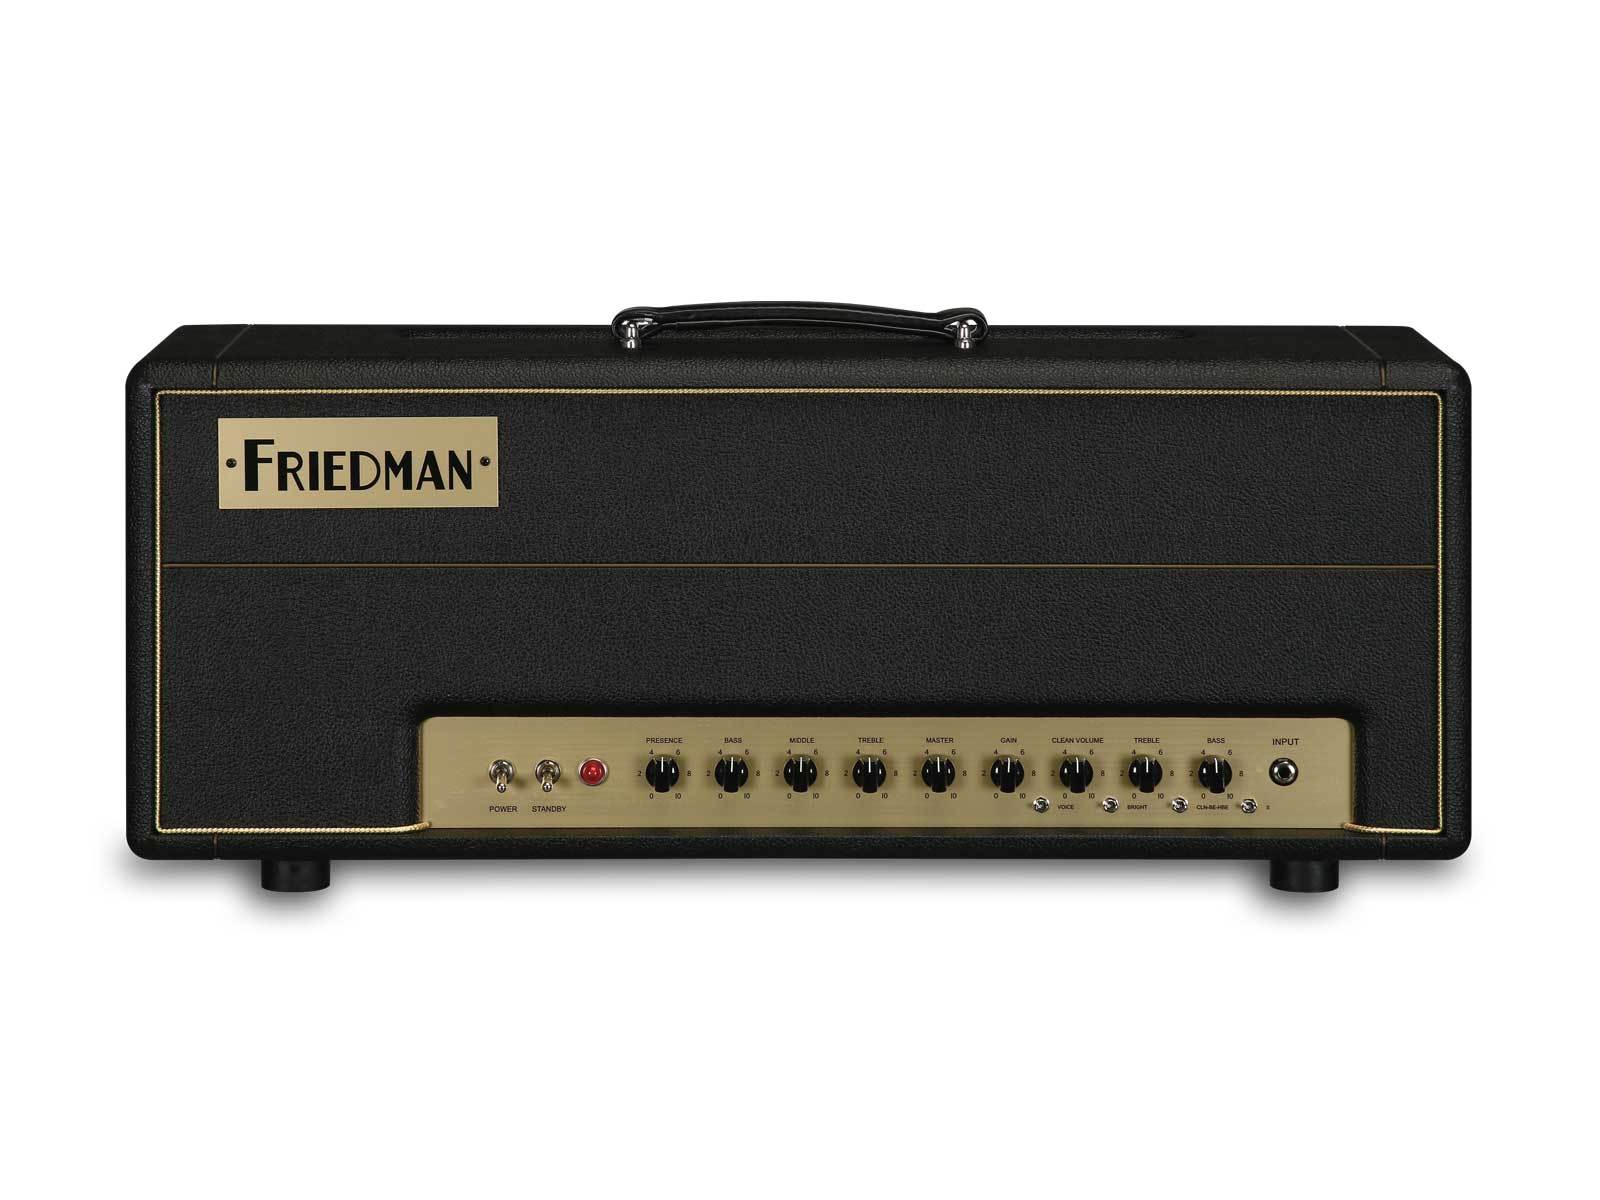 Friedman Amplification